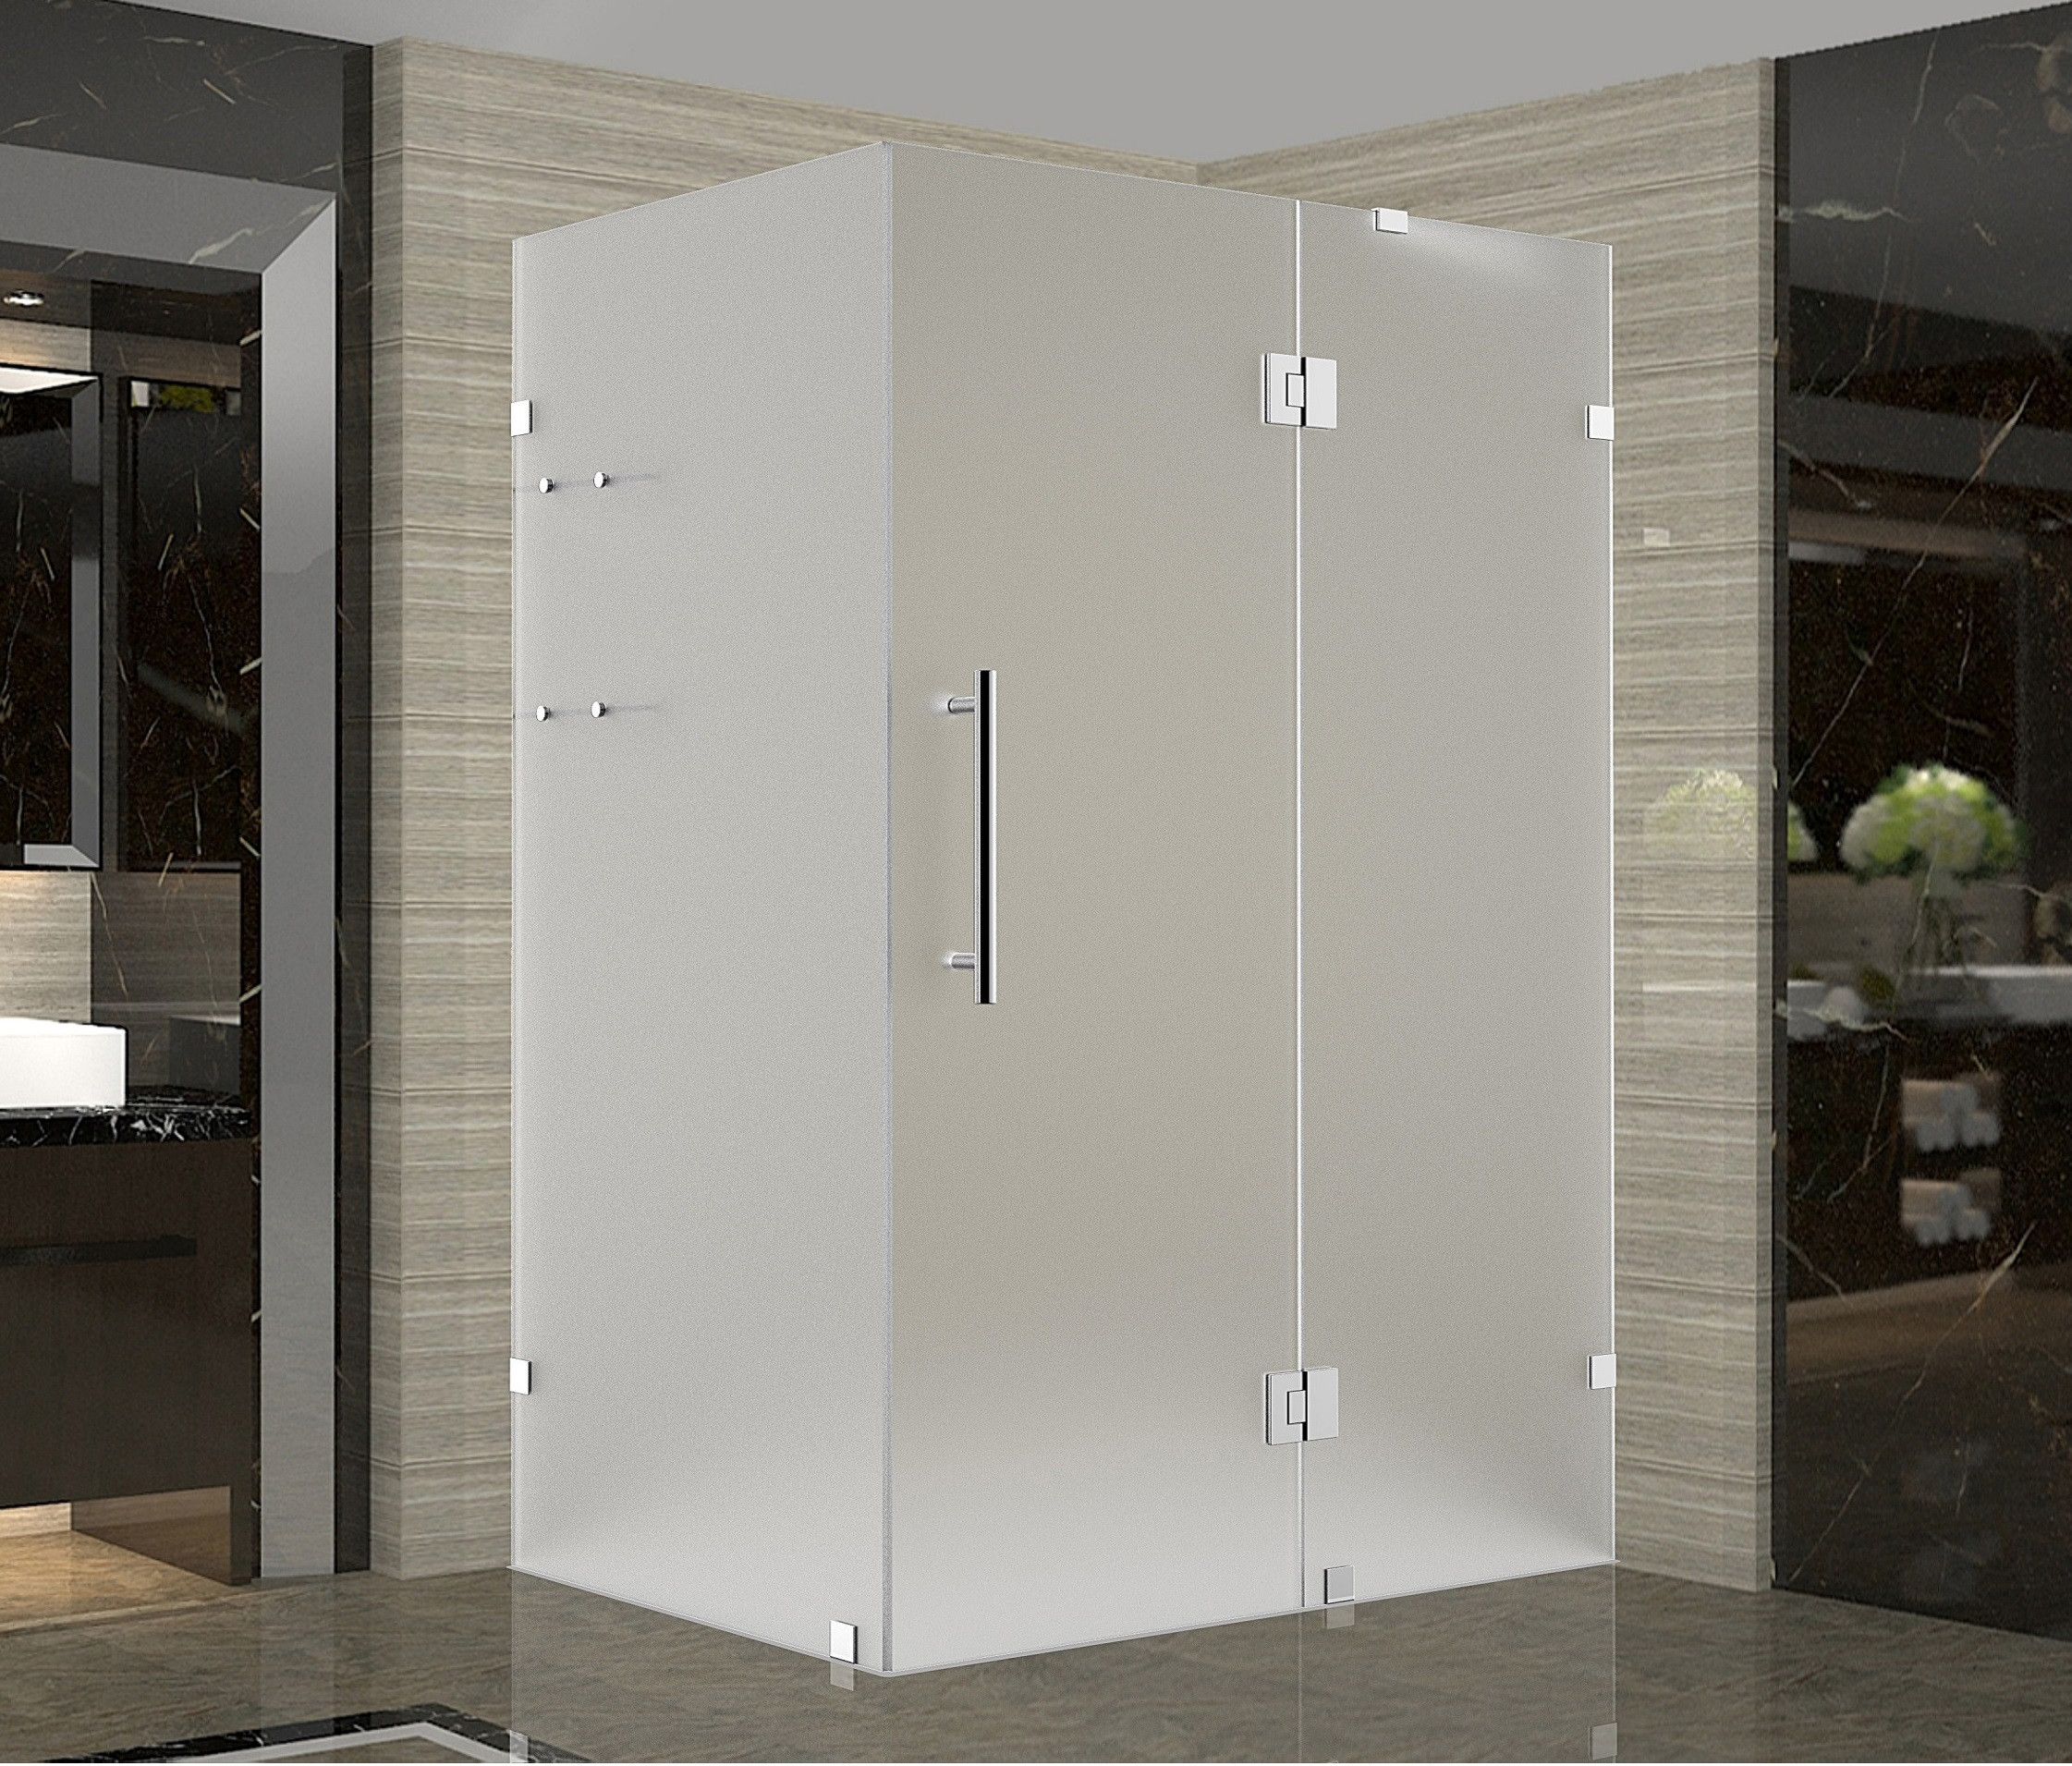 Aston Global SEN992F-CH-4834-10 Chrome Completely Frameless Frosted Shower Enclosure with Shelves